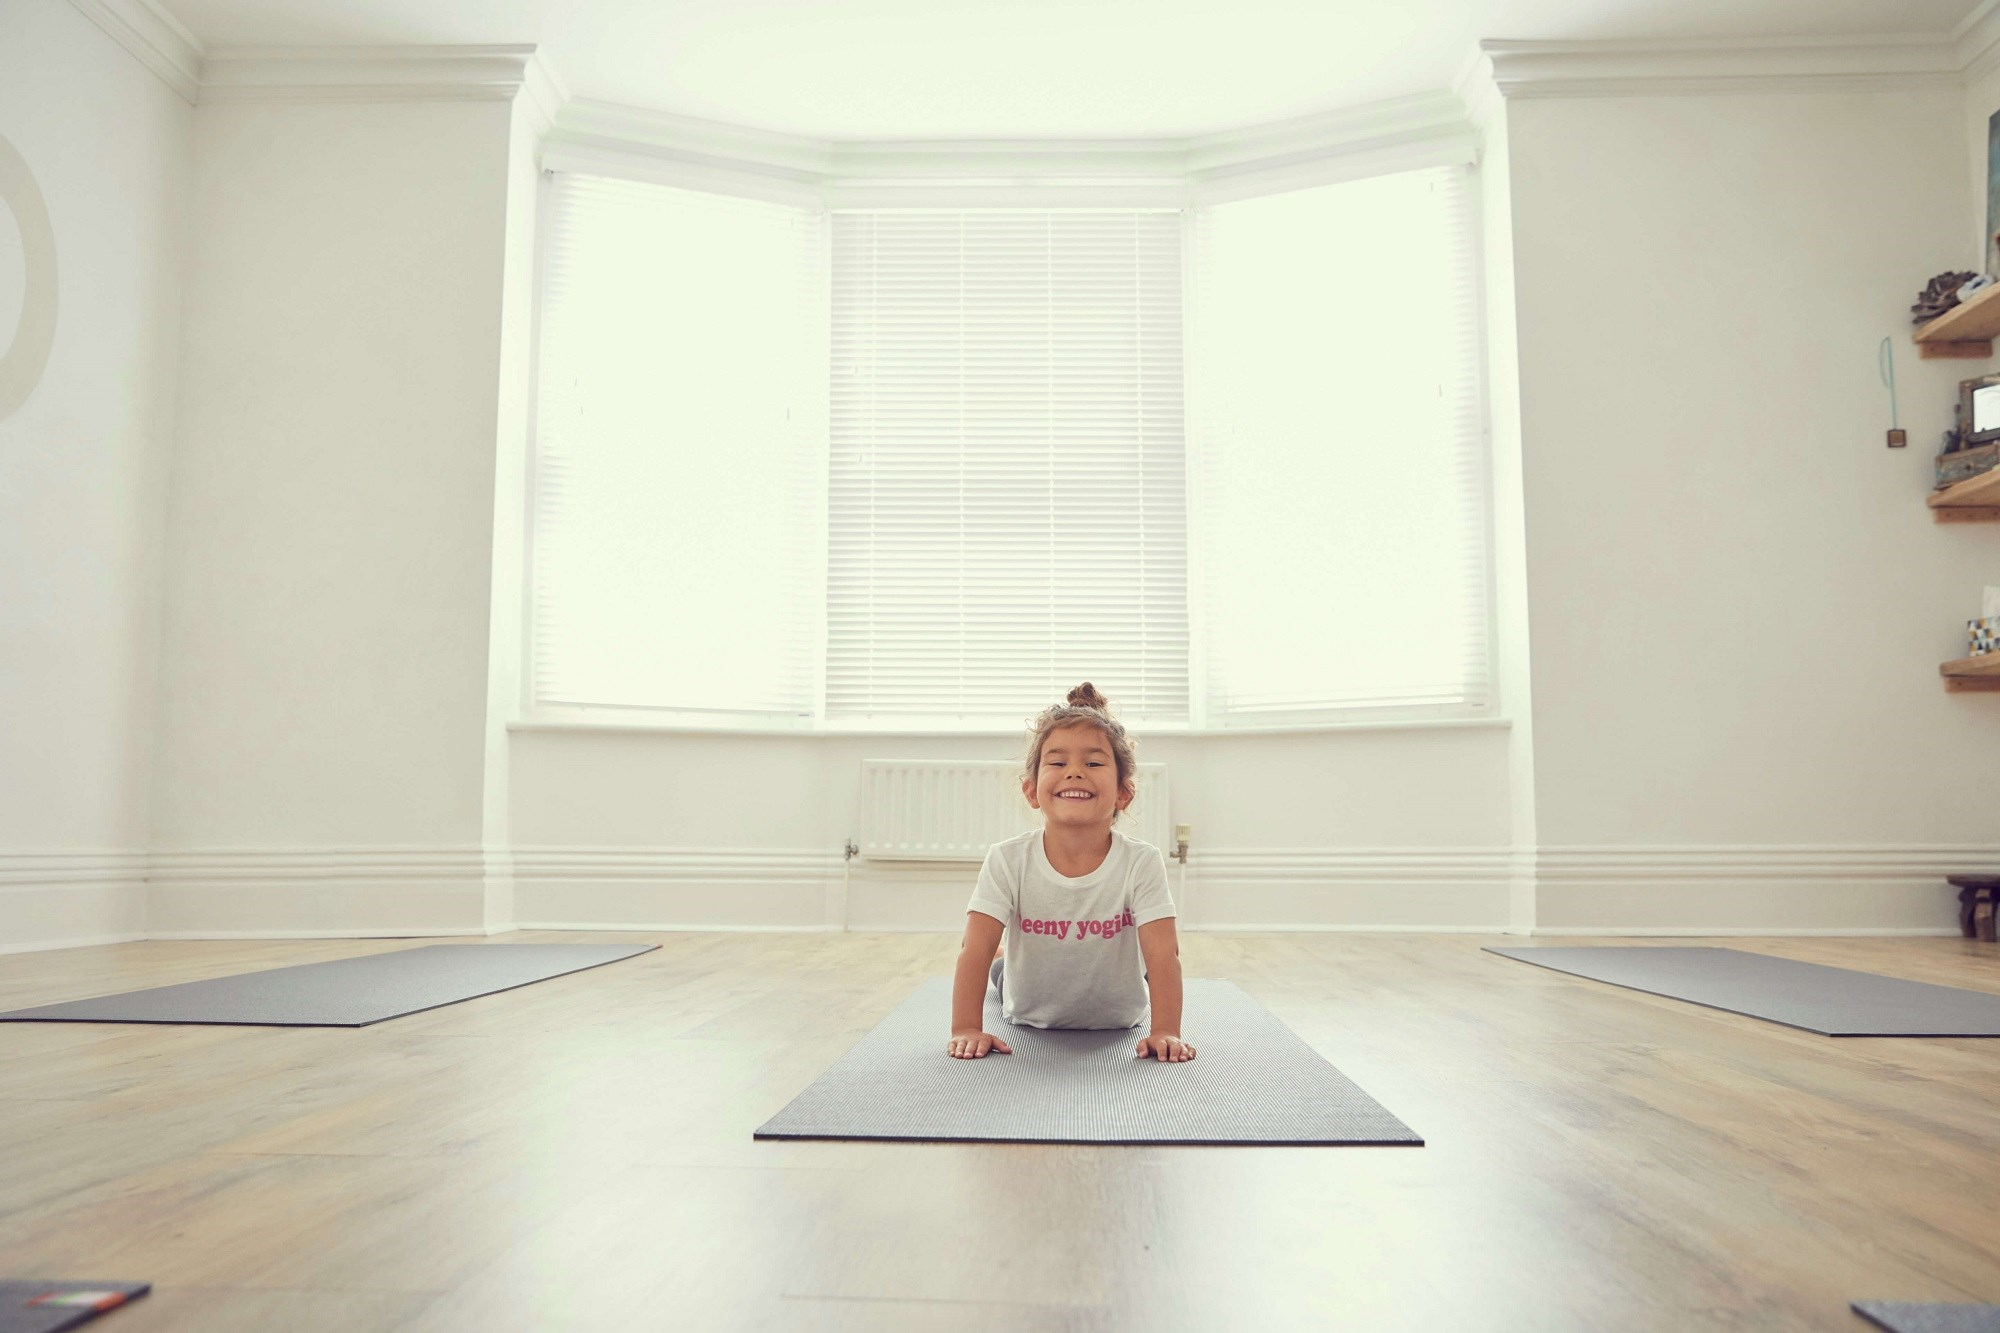 CDC: Increases in Yoga, Meditation for Children from 2012-2017